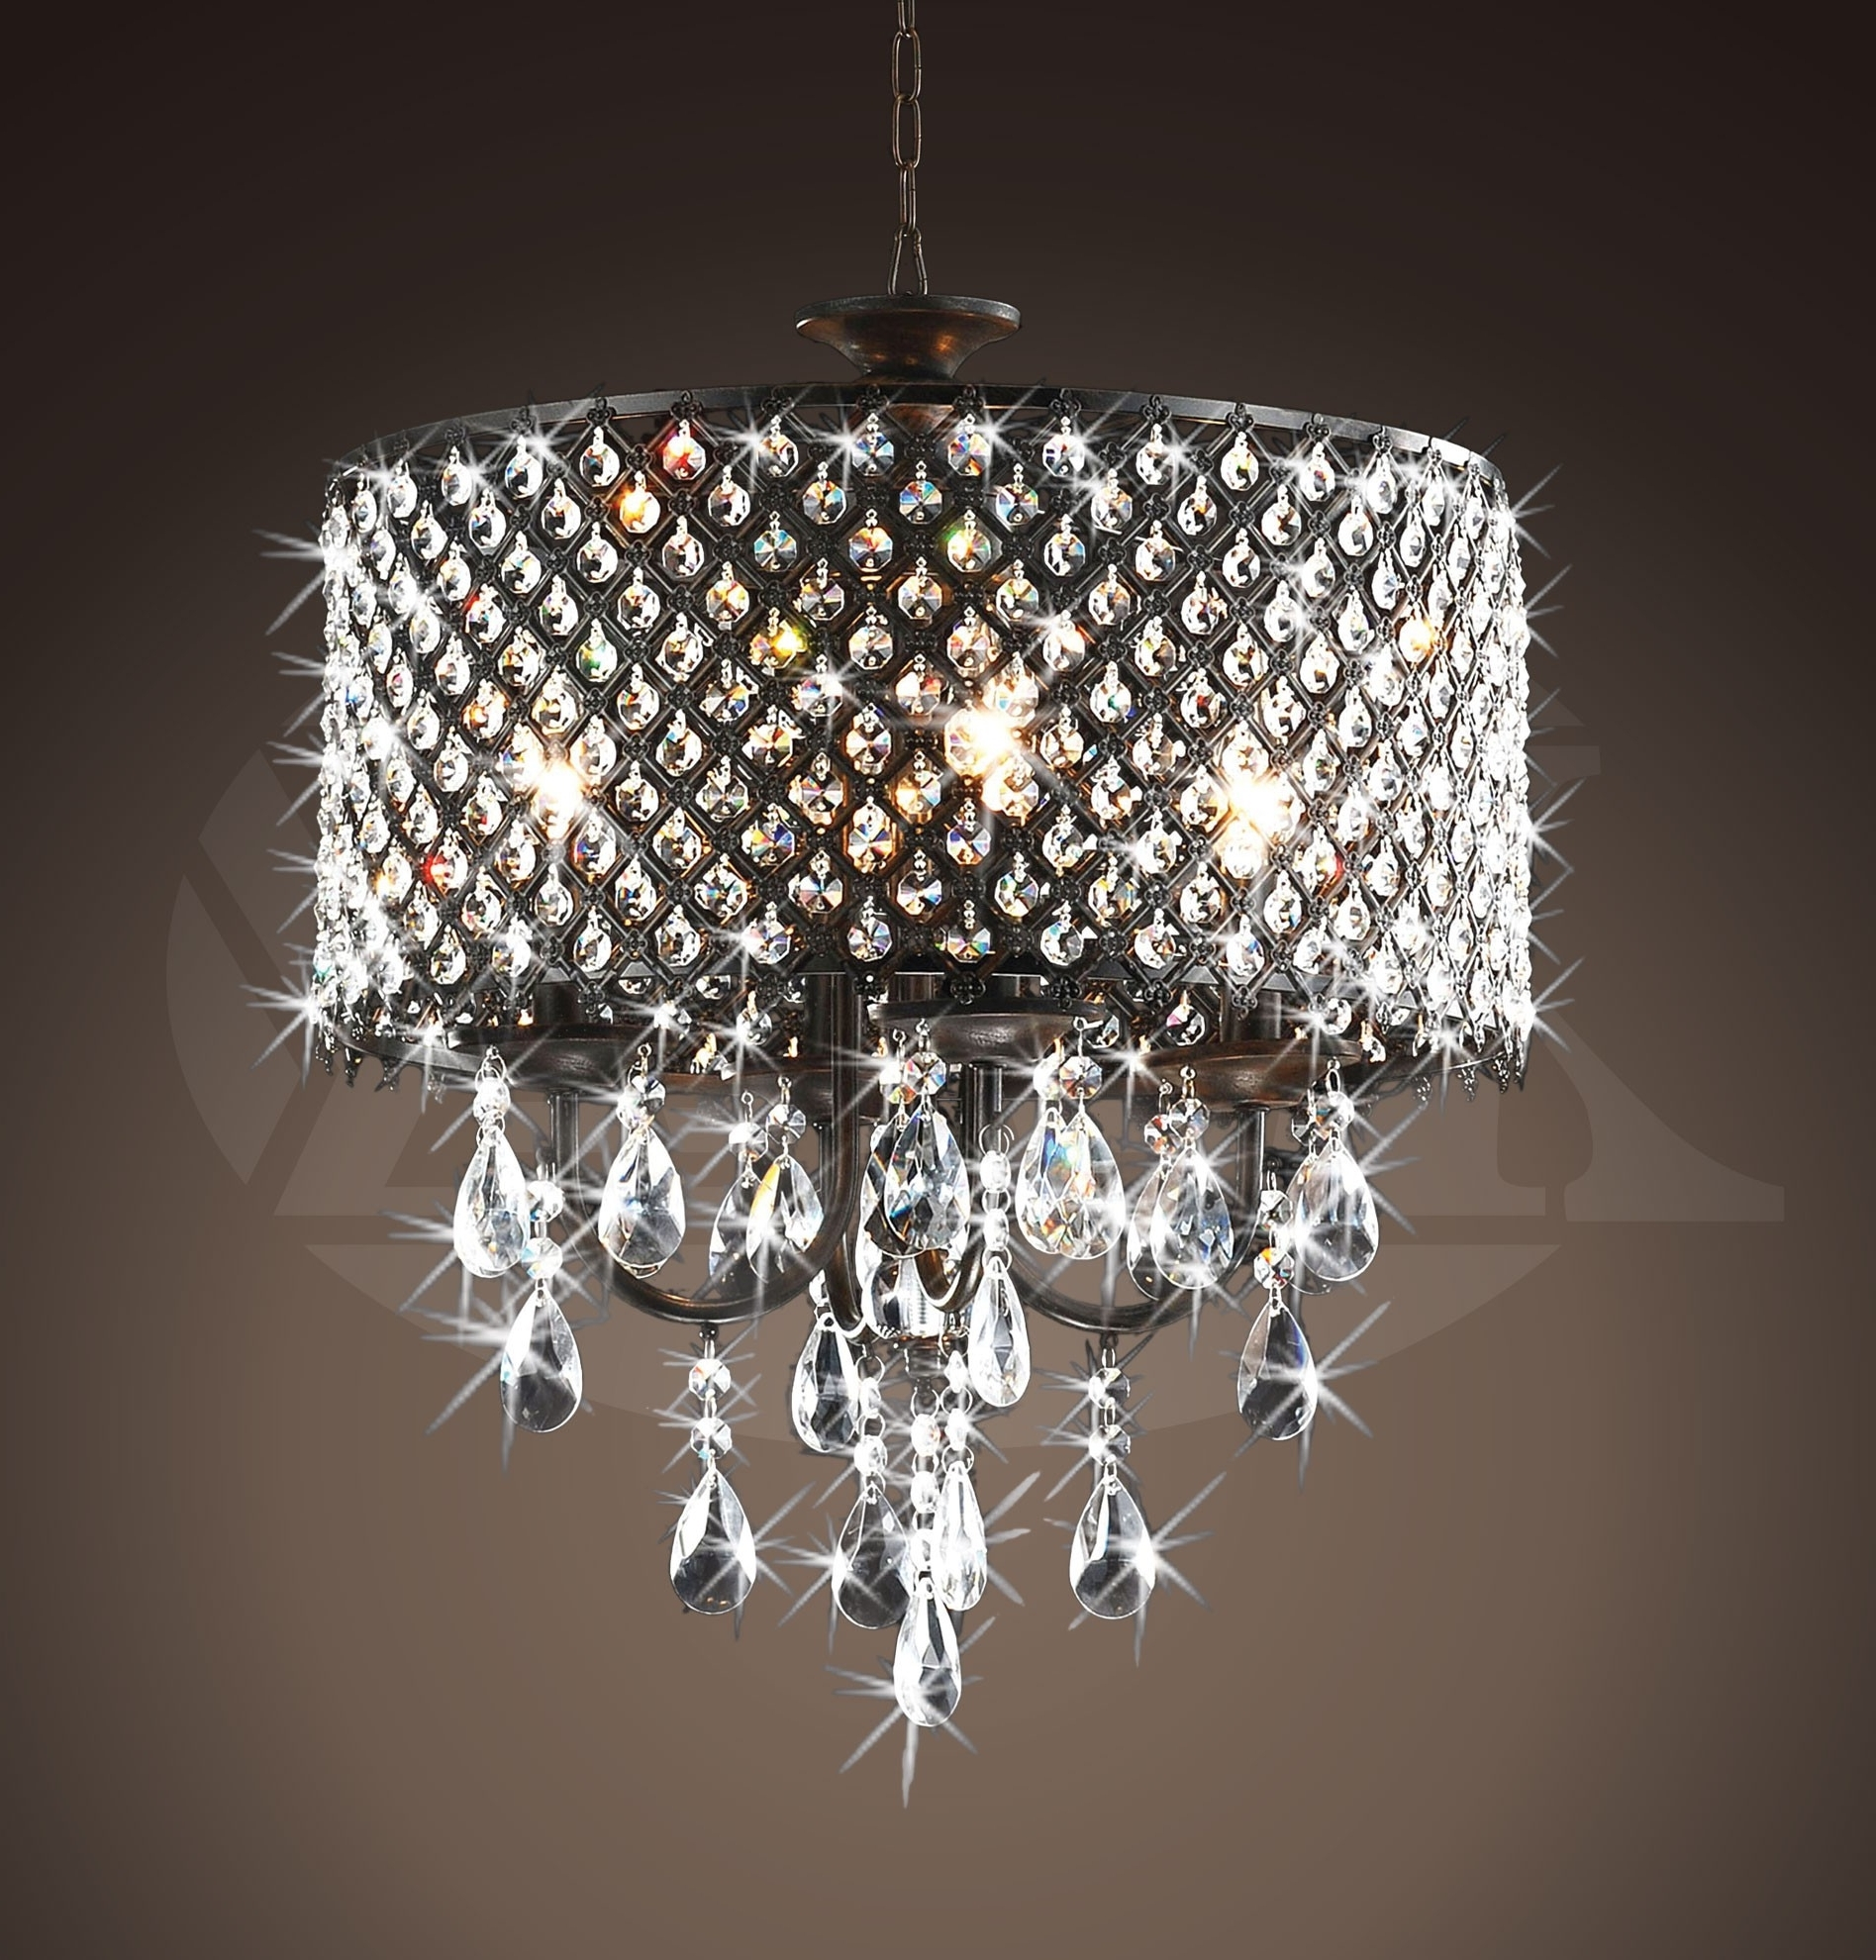 Widely Used Rachelle 4 Light Round Antique Bronze Brass Crystal Chandelier Inside Brass And Crystal Chandeliers (View 14 of 15)